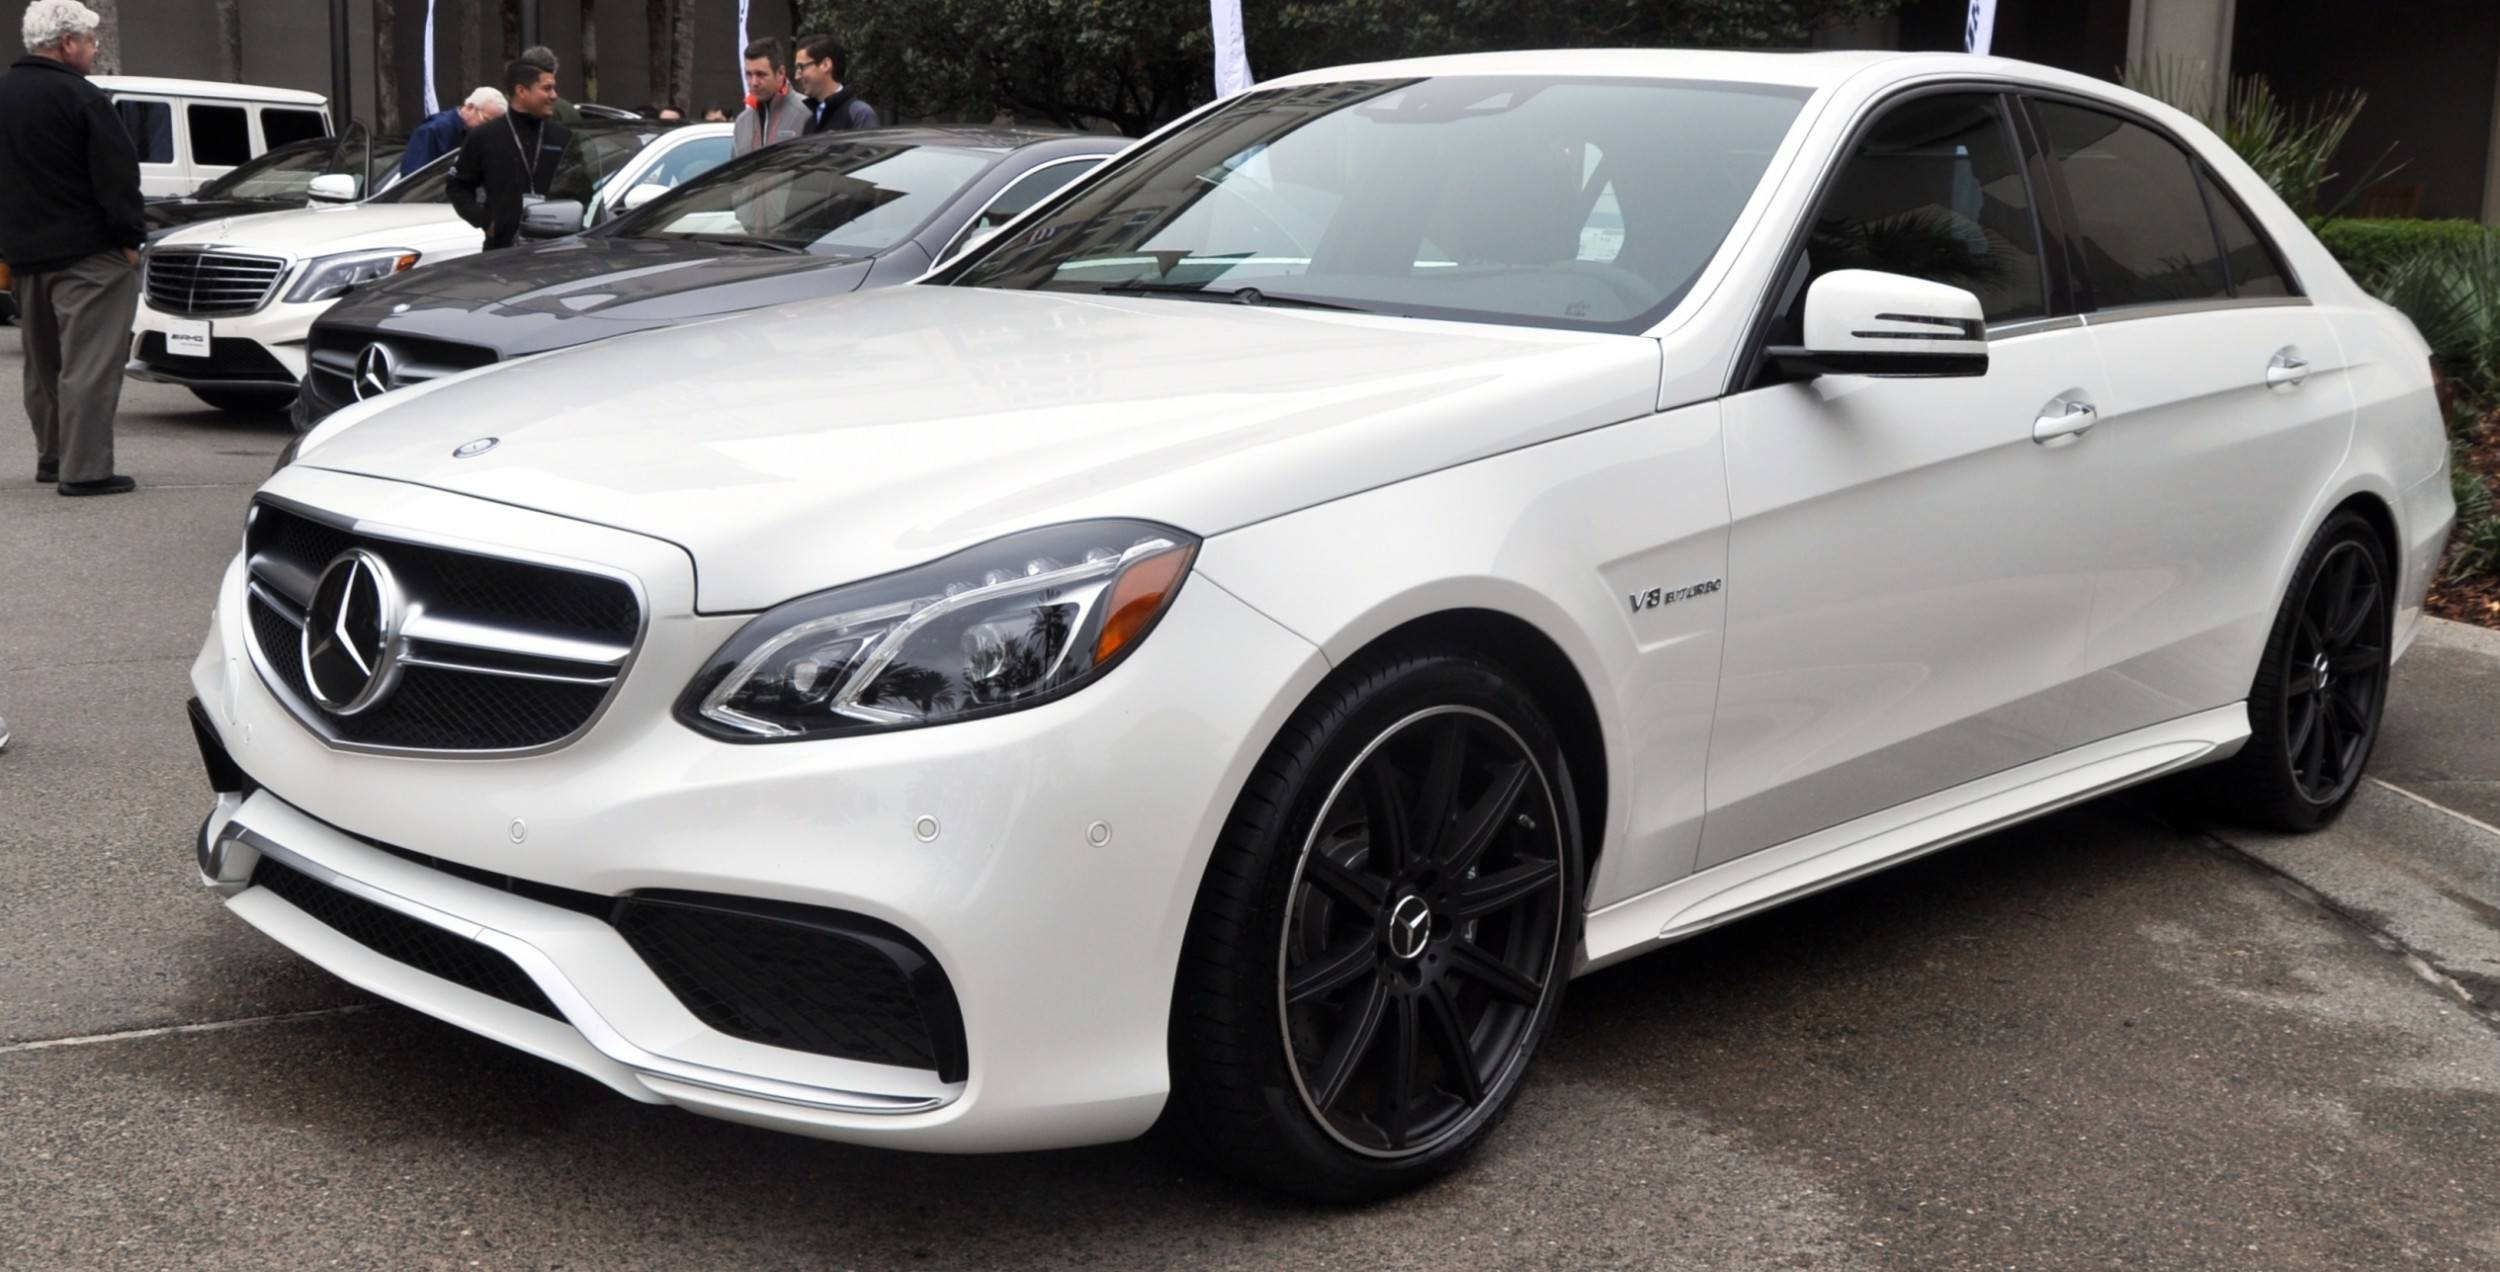 The white knight 2014 mercedes benz e63 amg 4matic s for Mercedes benz e63 s amg